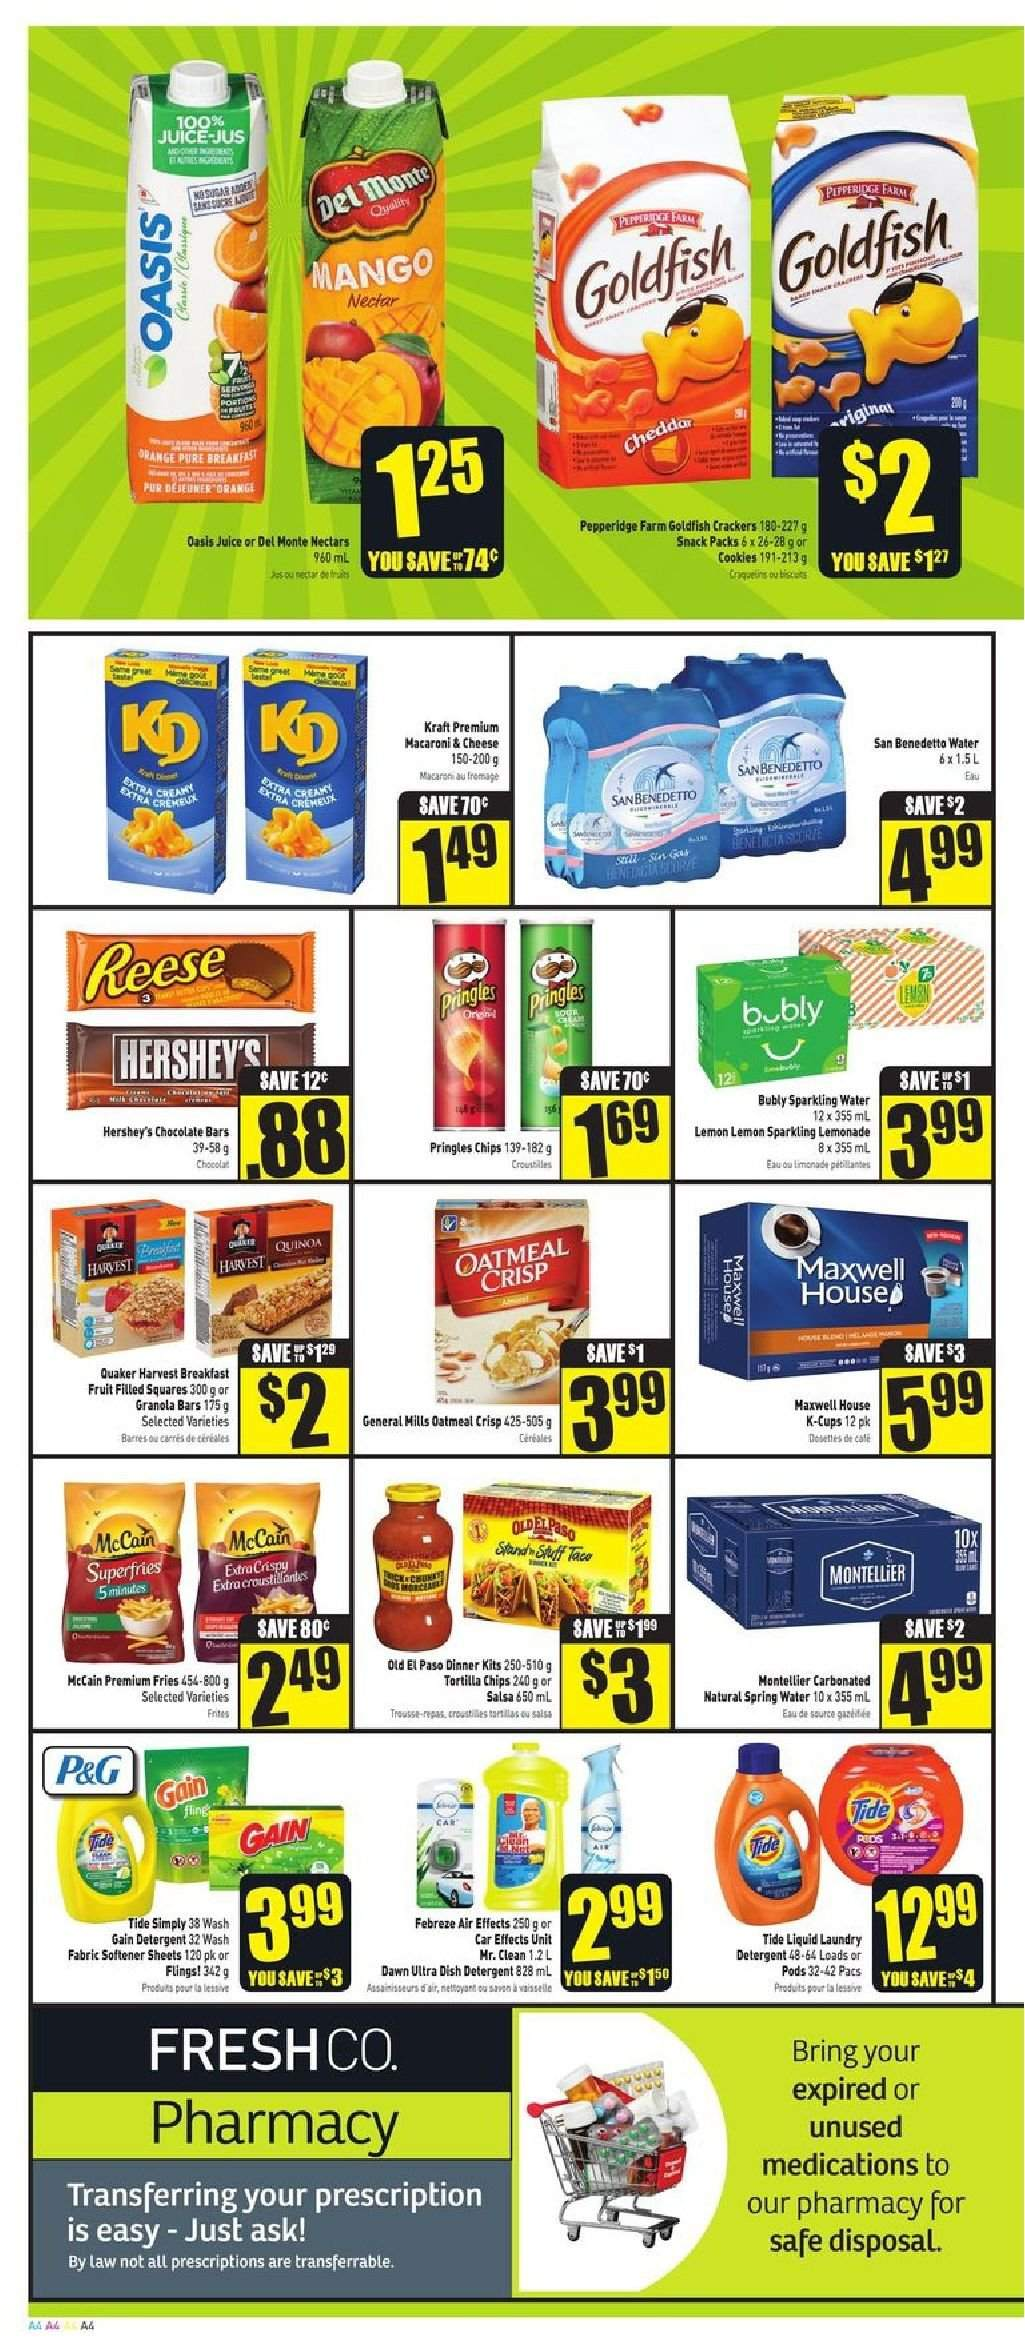 FreshCo. Flyer  - August 30, 2018 - September 05, 2018. Page 4.